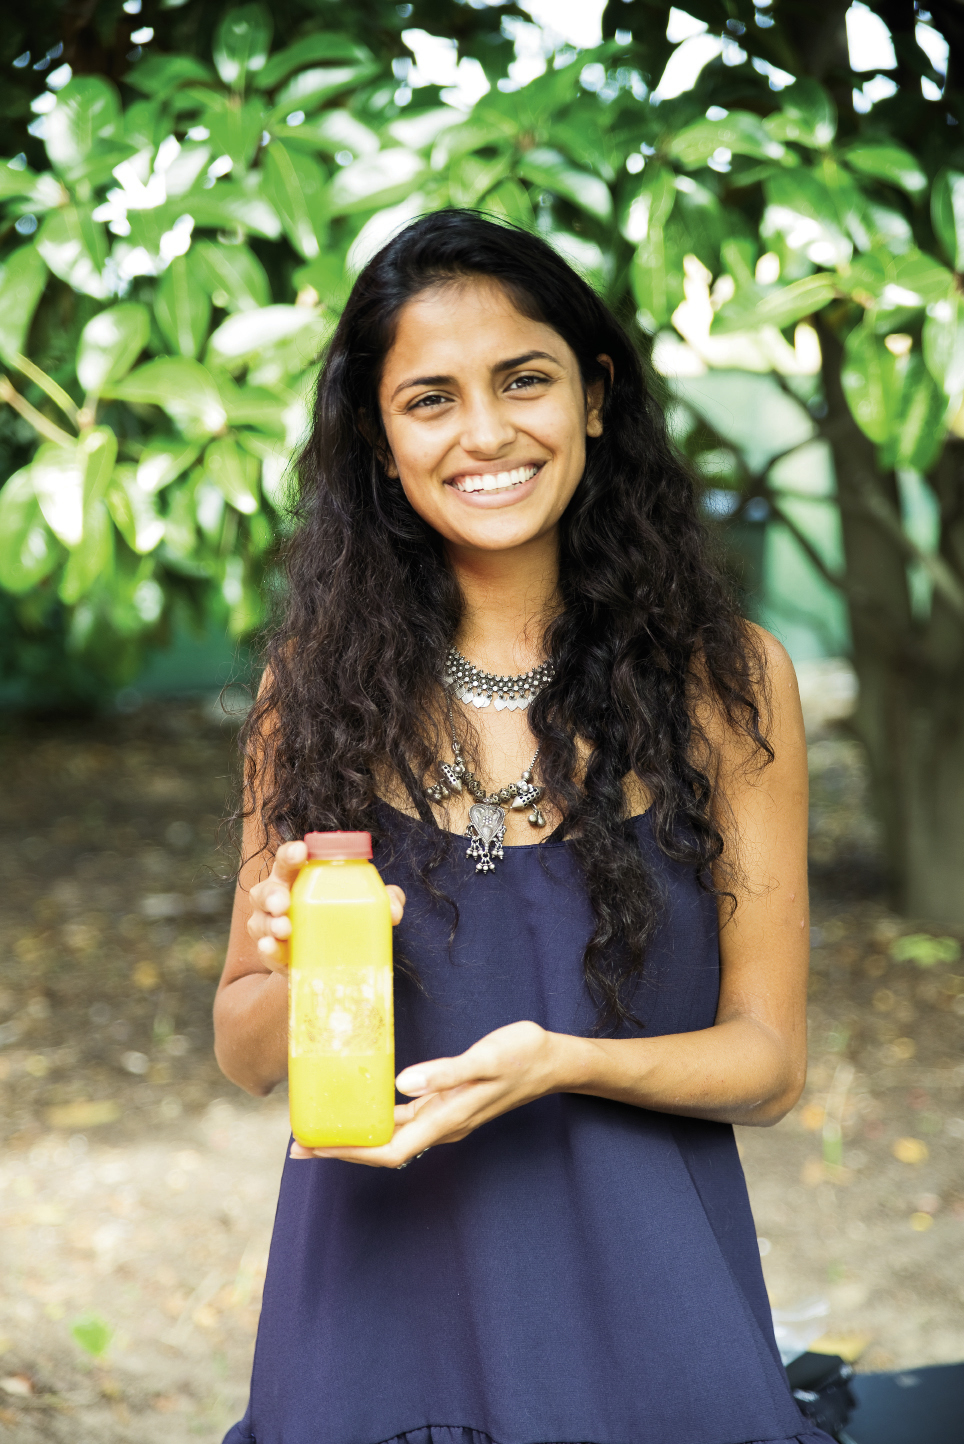 Ruchi Mistry of Huriyali Juices shows off a bottle of her company's cold-pressed juice made daily